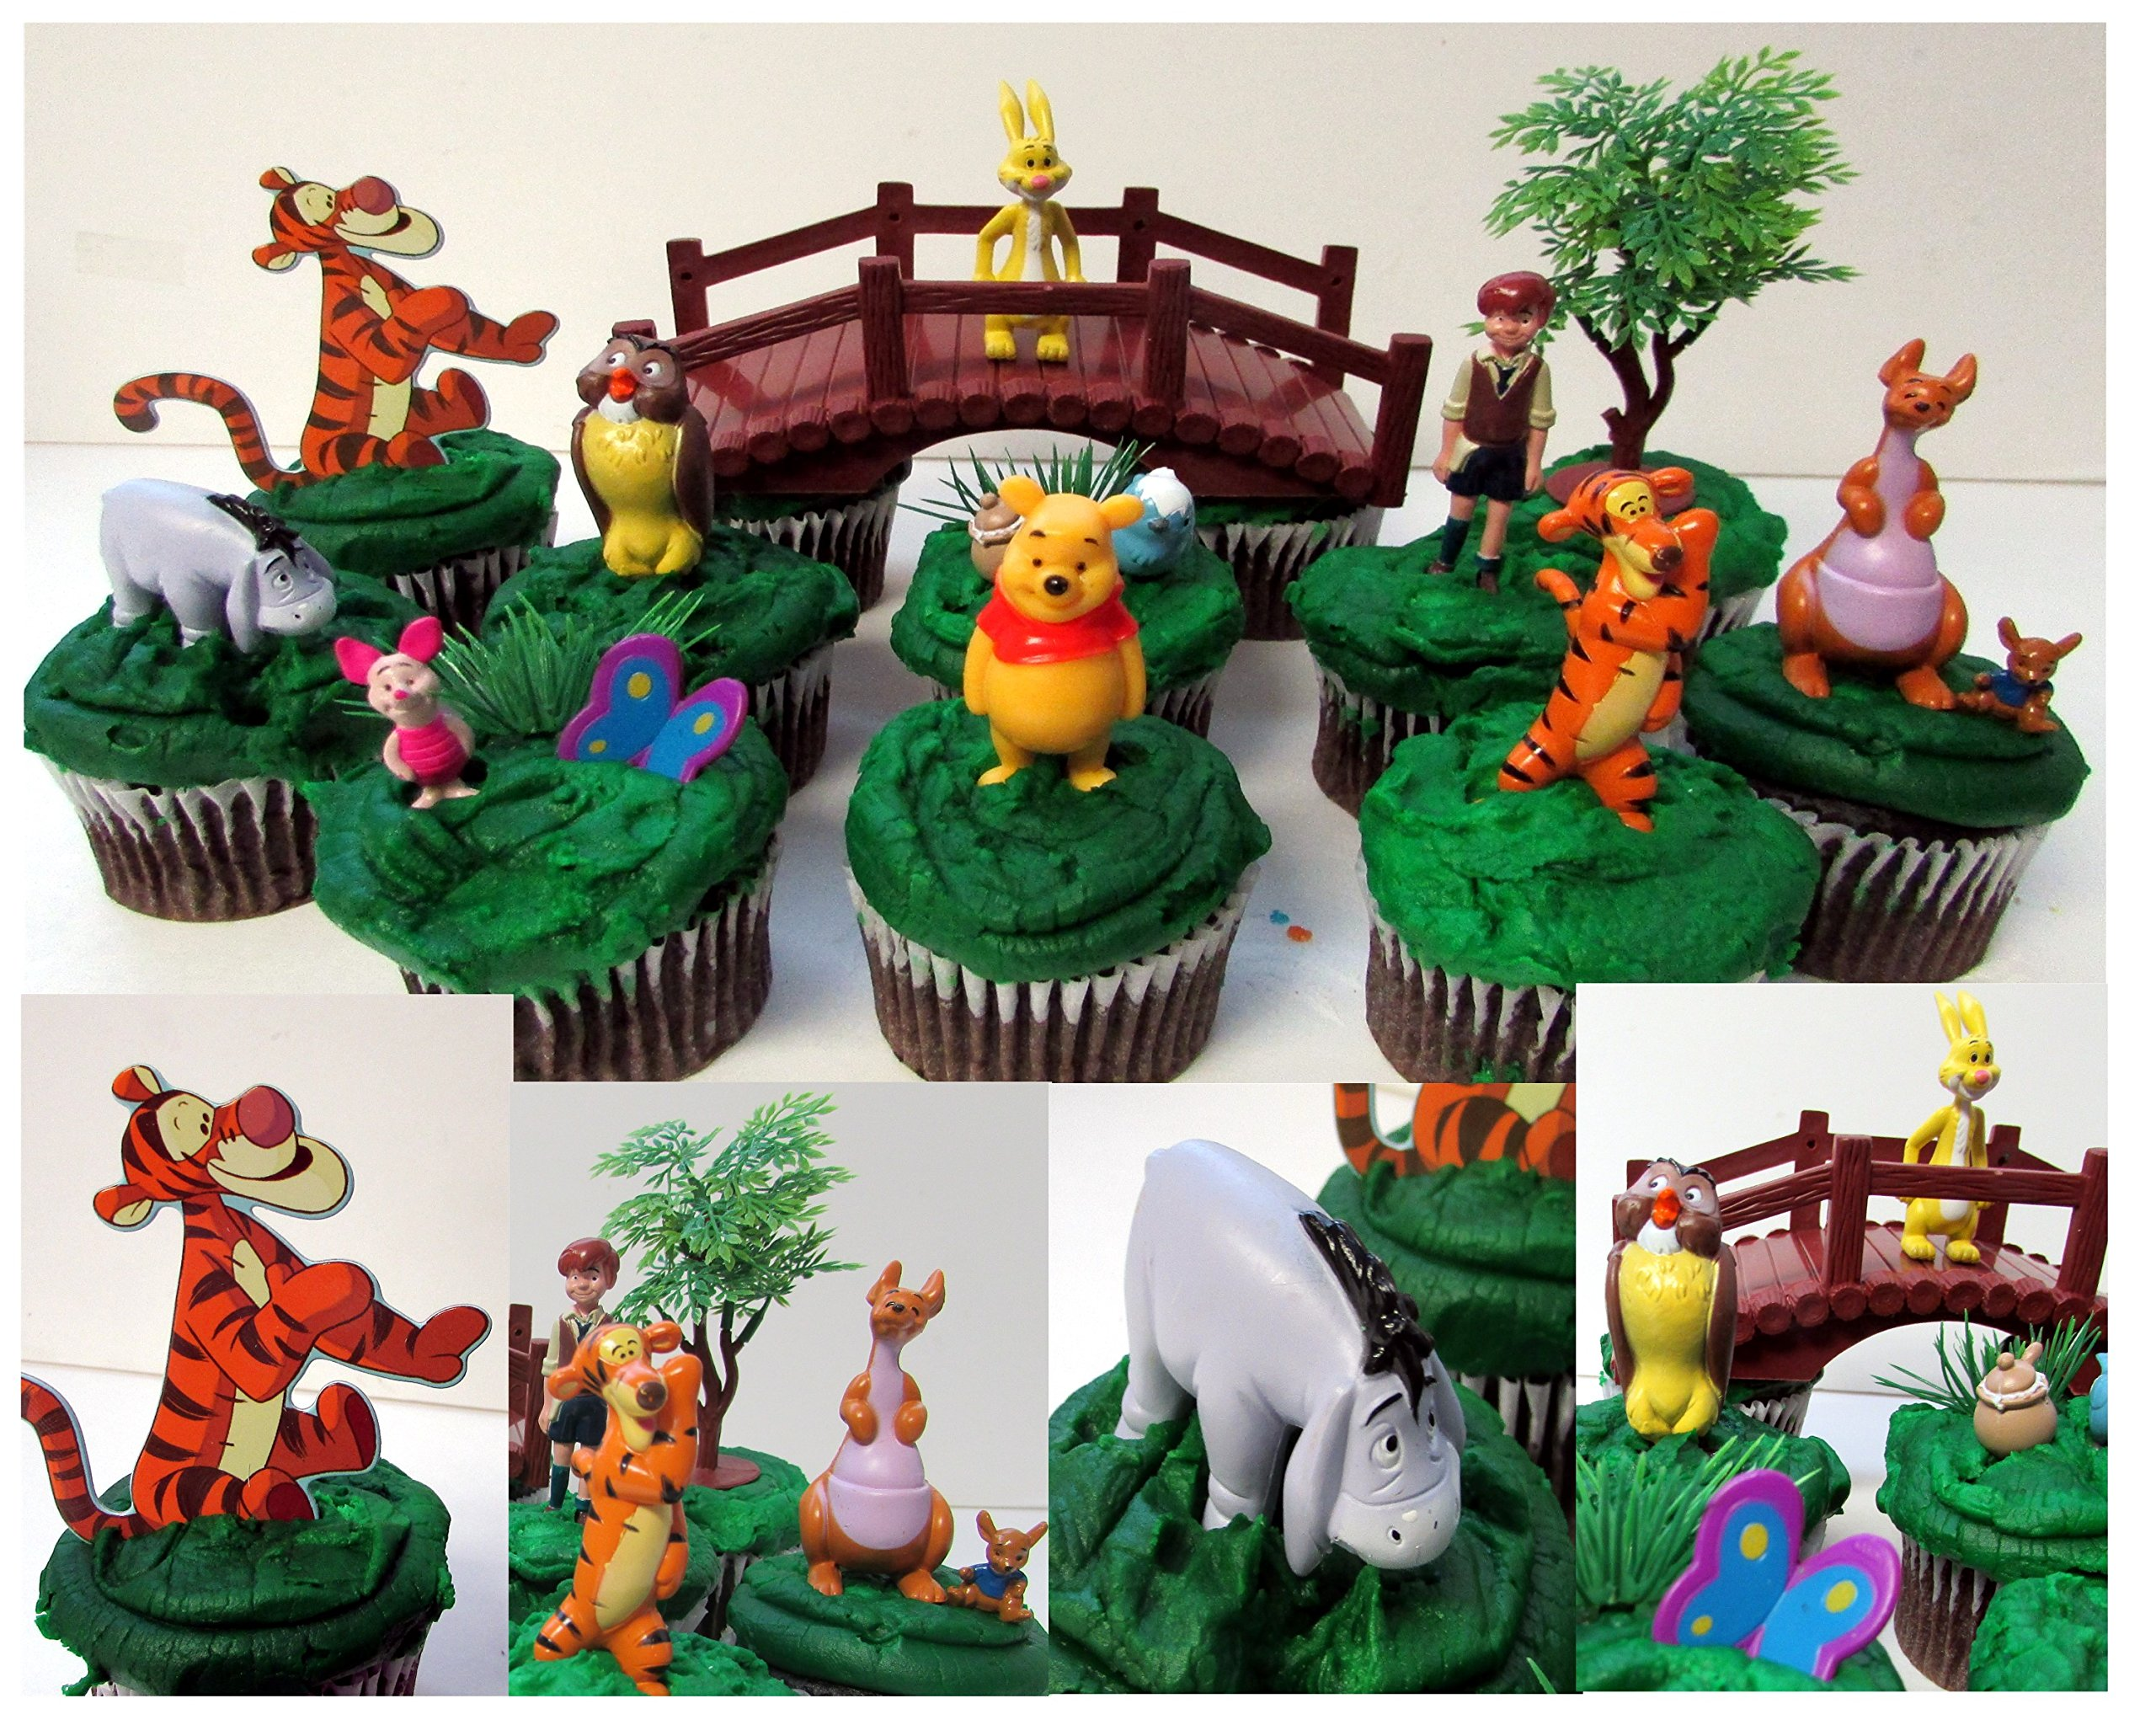 Get Quotations DISNEY WINNIE THE POOH 16 Piece Birthday CUPCAKE Topper Set Featuring Winnie The Pooh Piglet